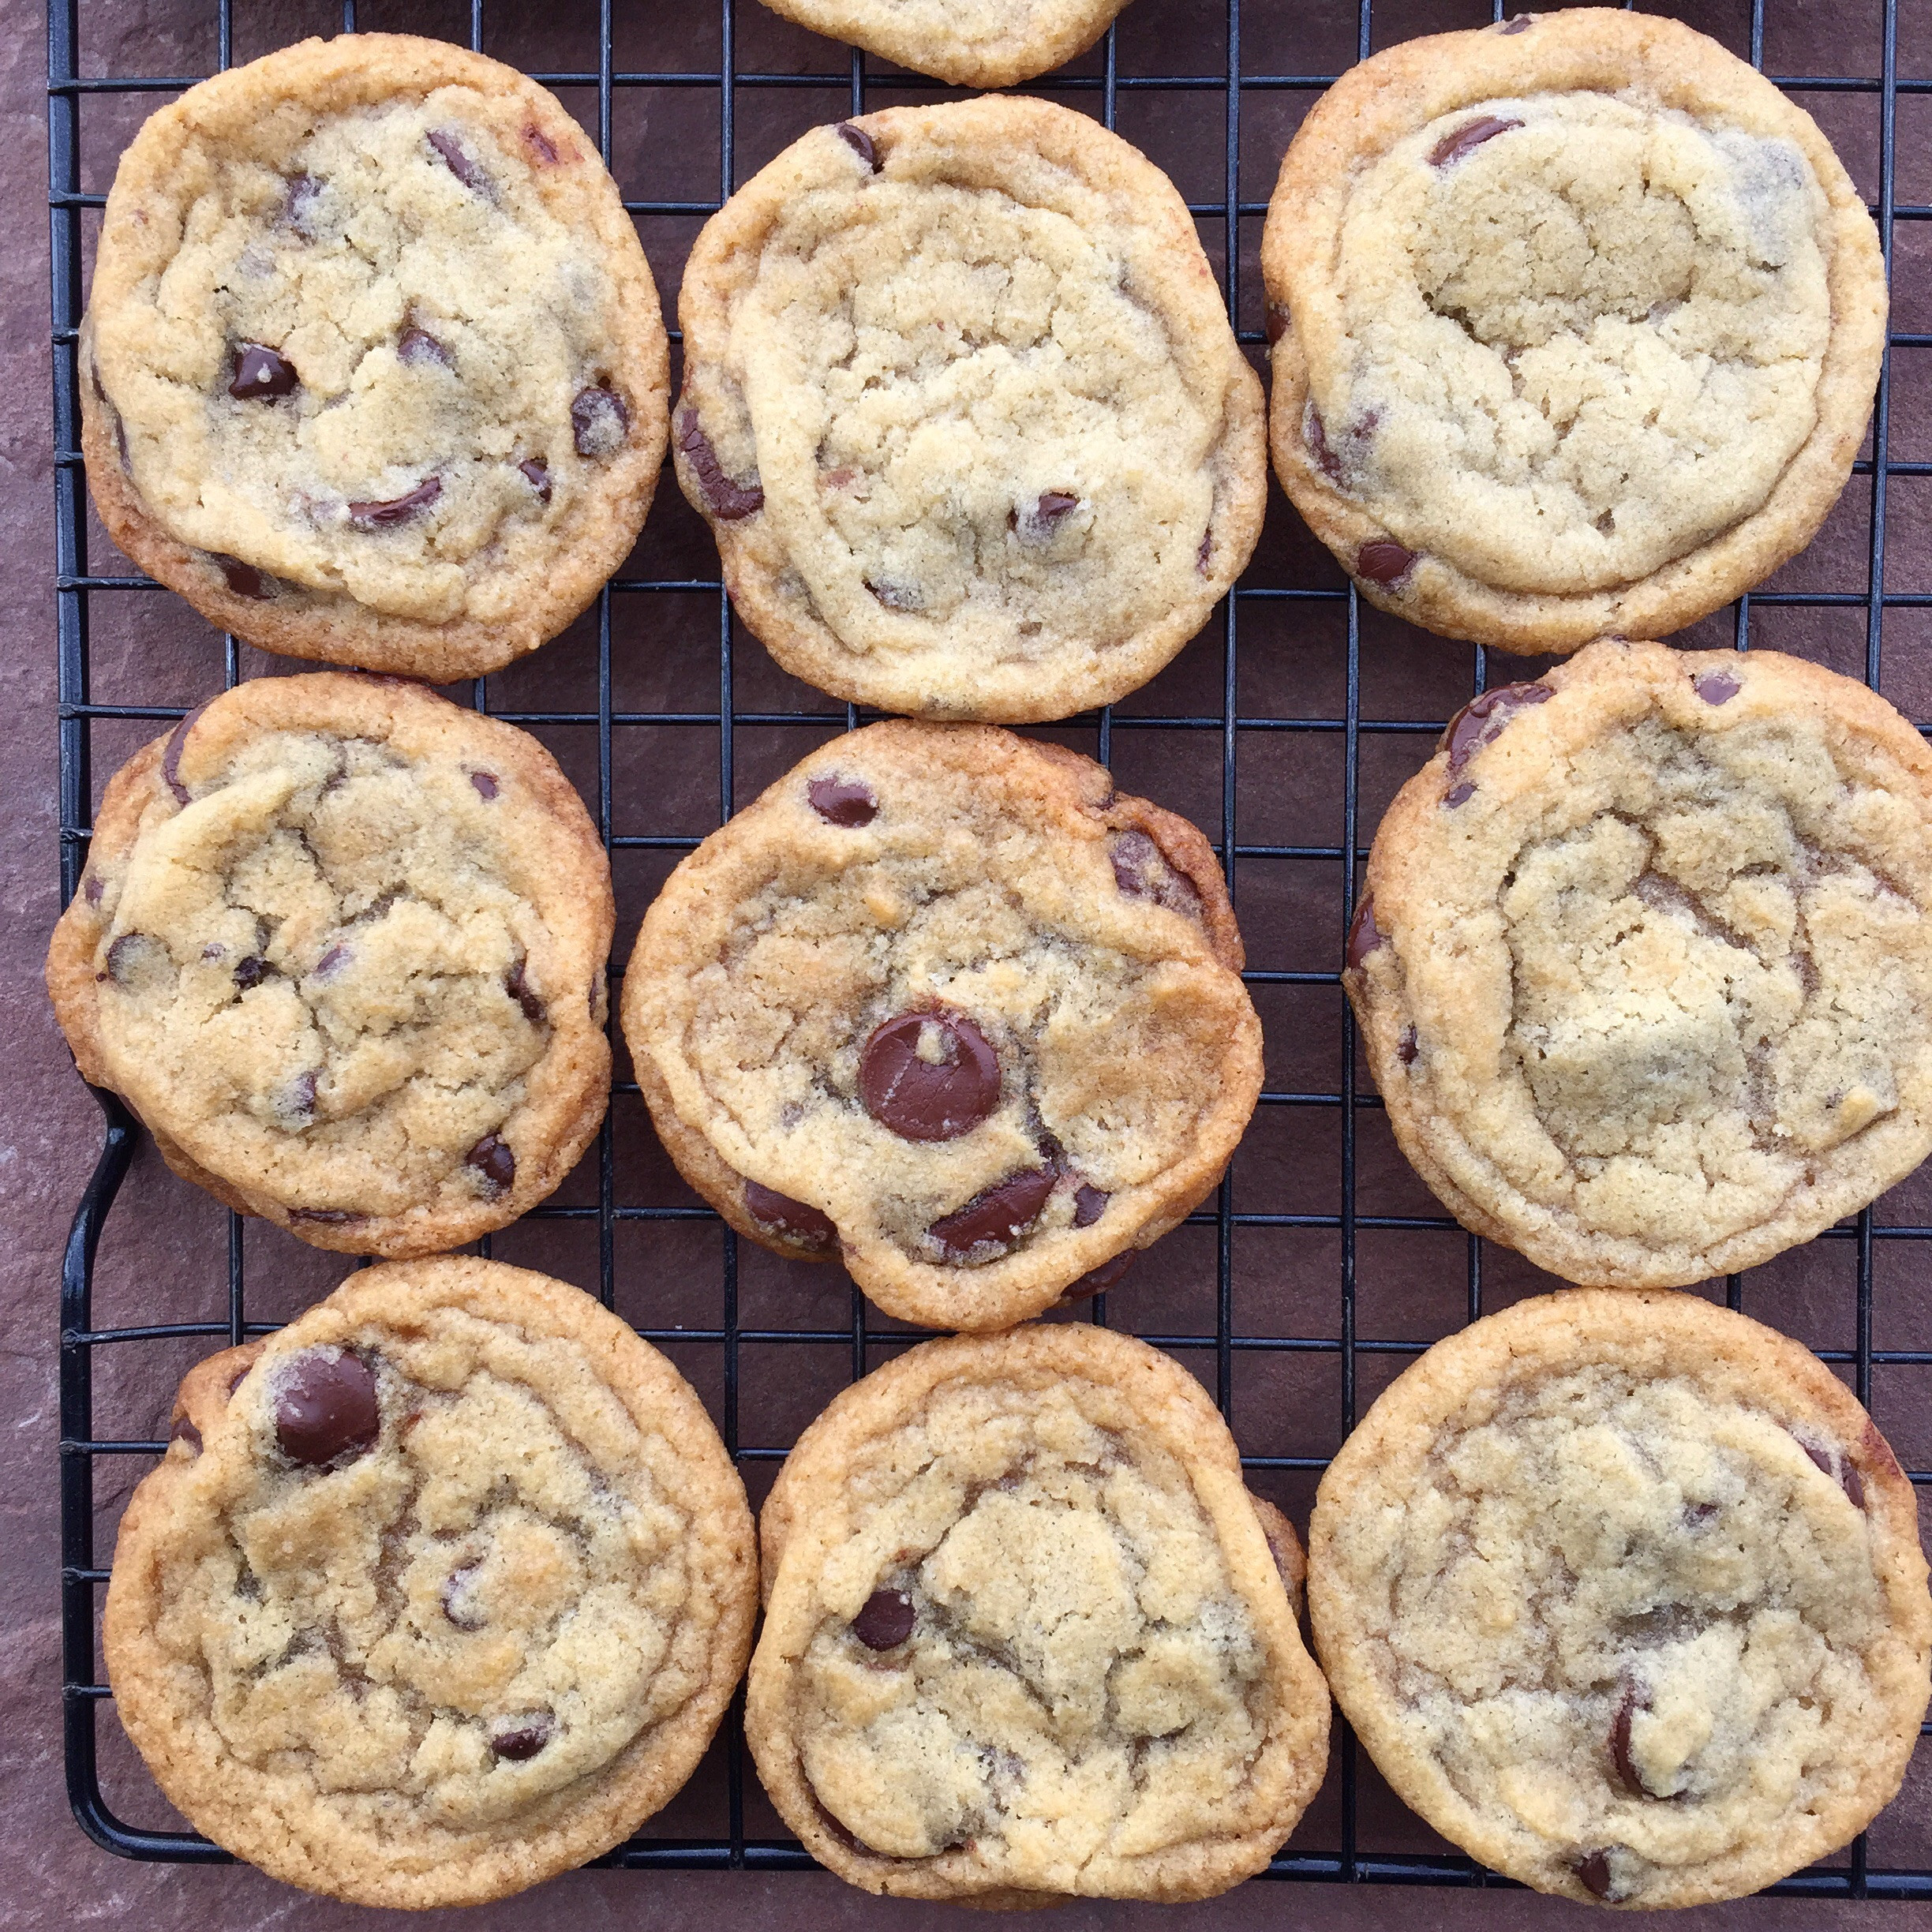 Vegan Cookie Recipes  The Best Vegan Chocolate Chip Cookies